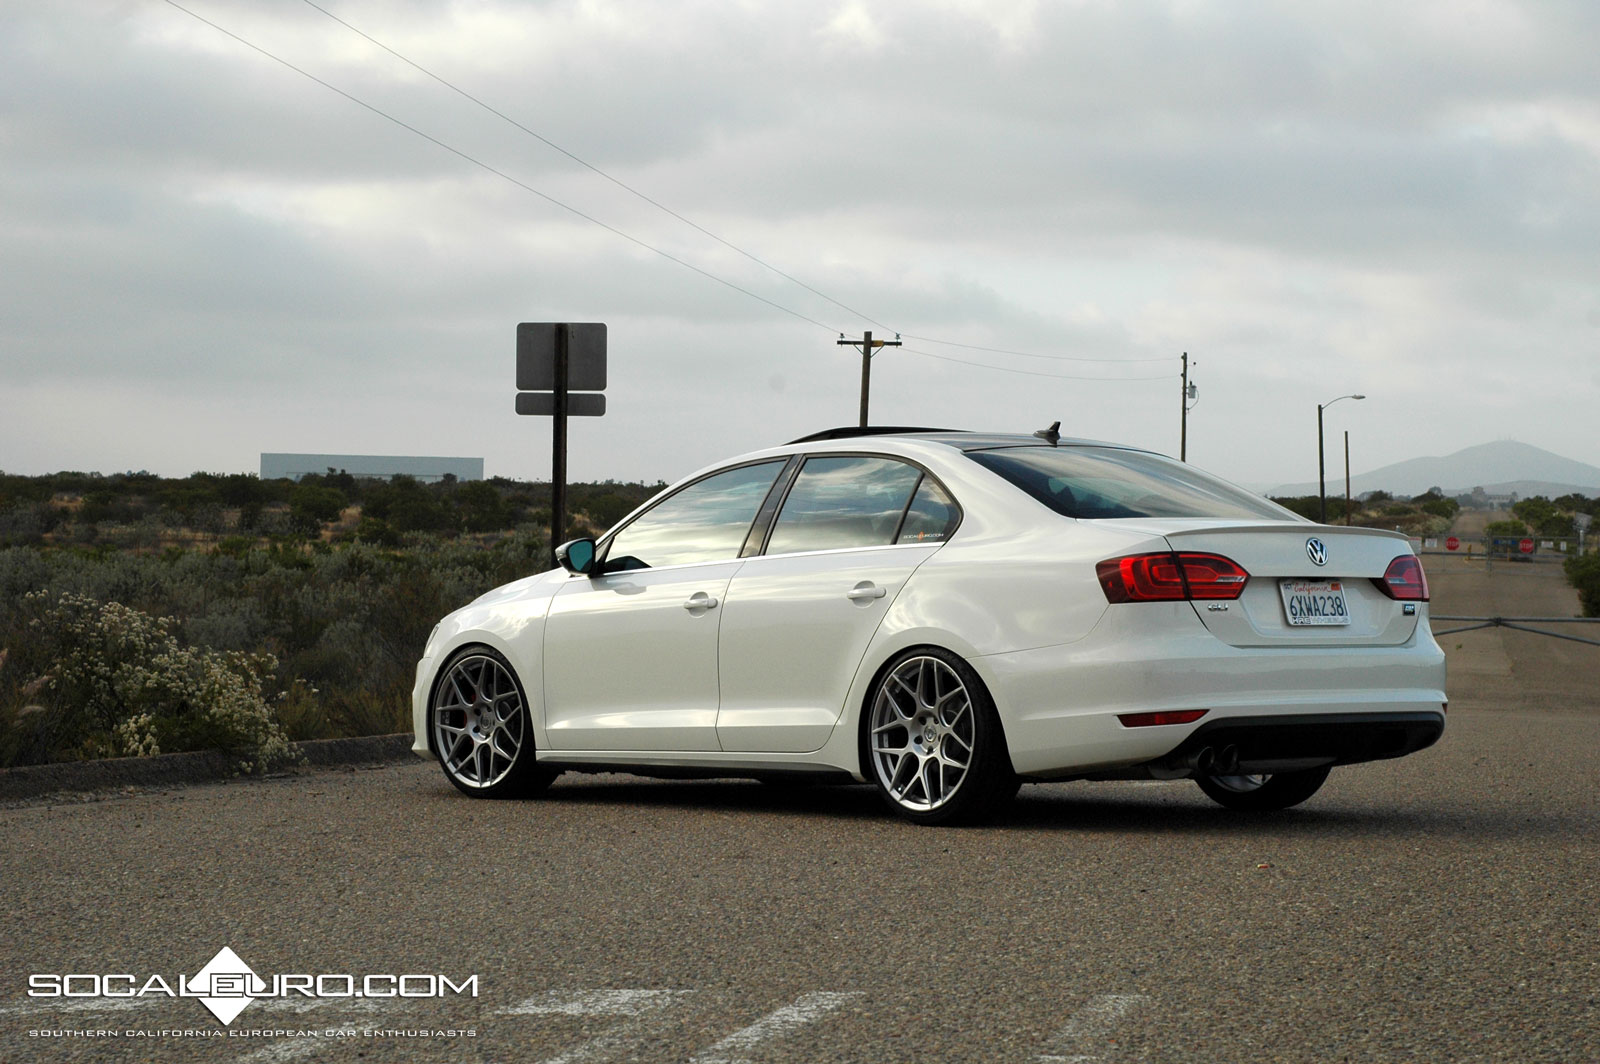 VWVortex.com - MK6 GLI with HRE FF01